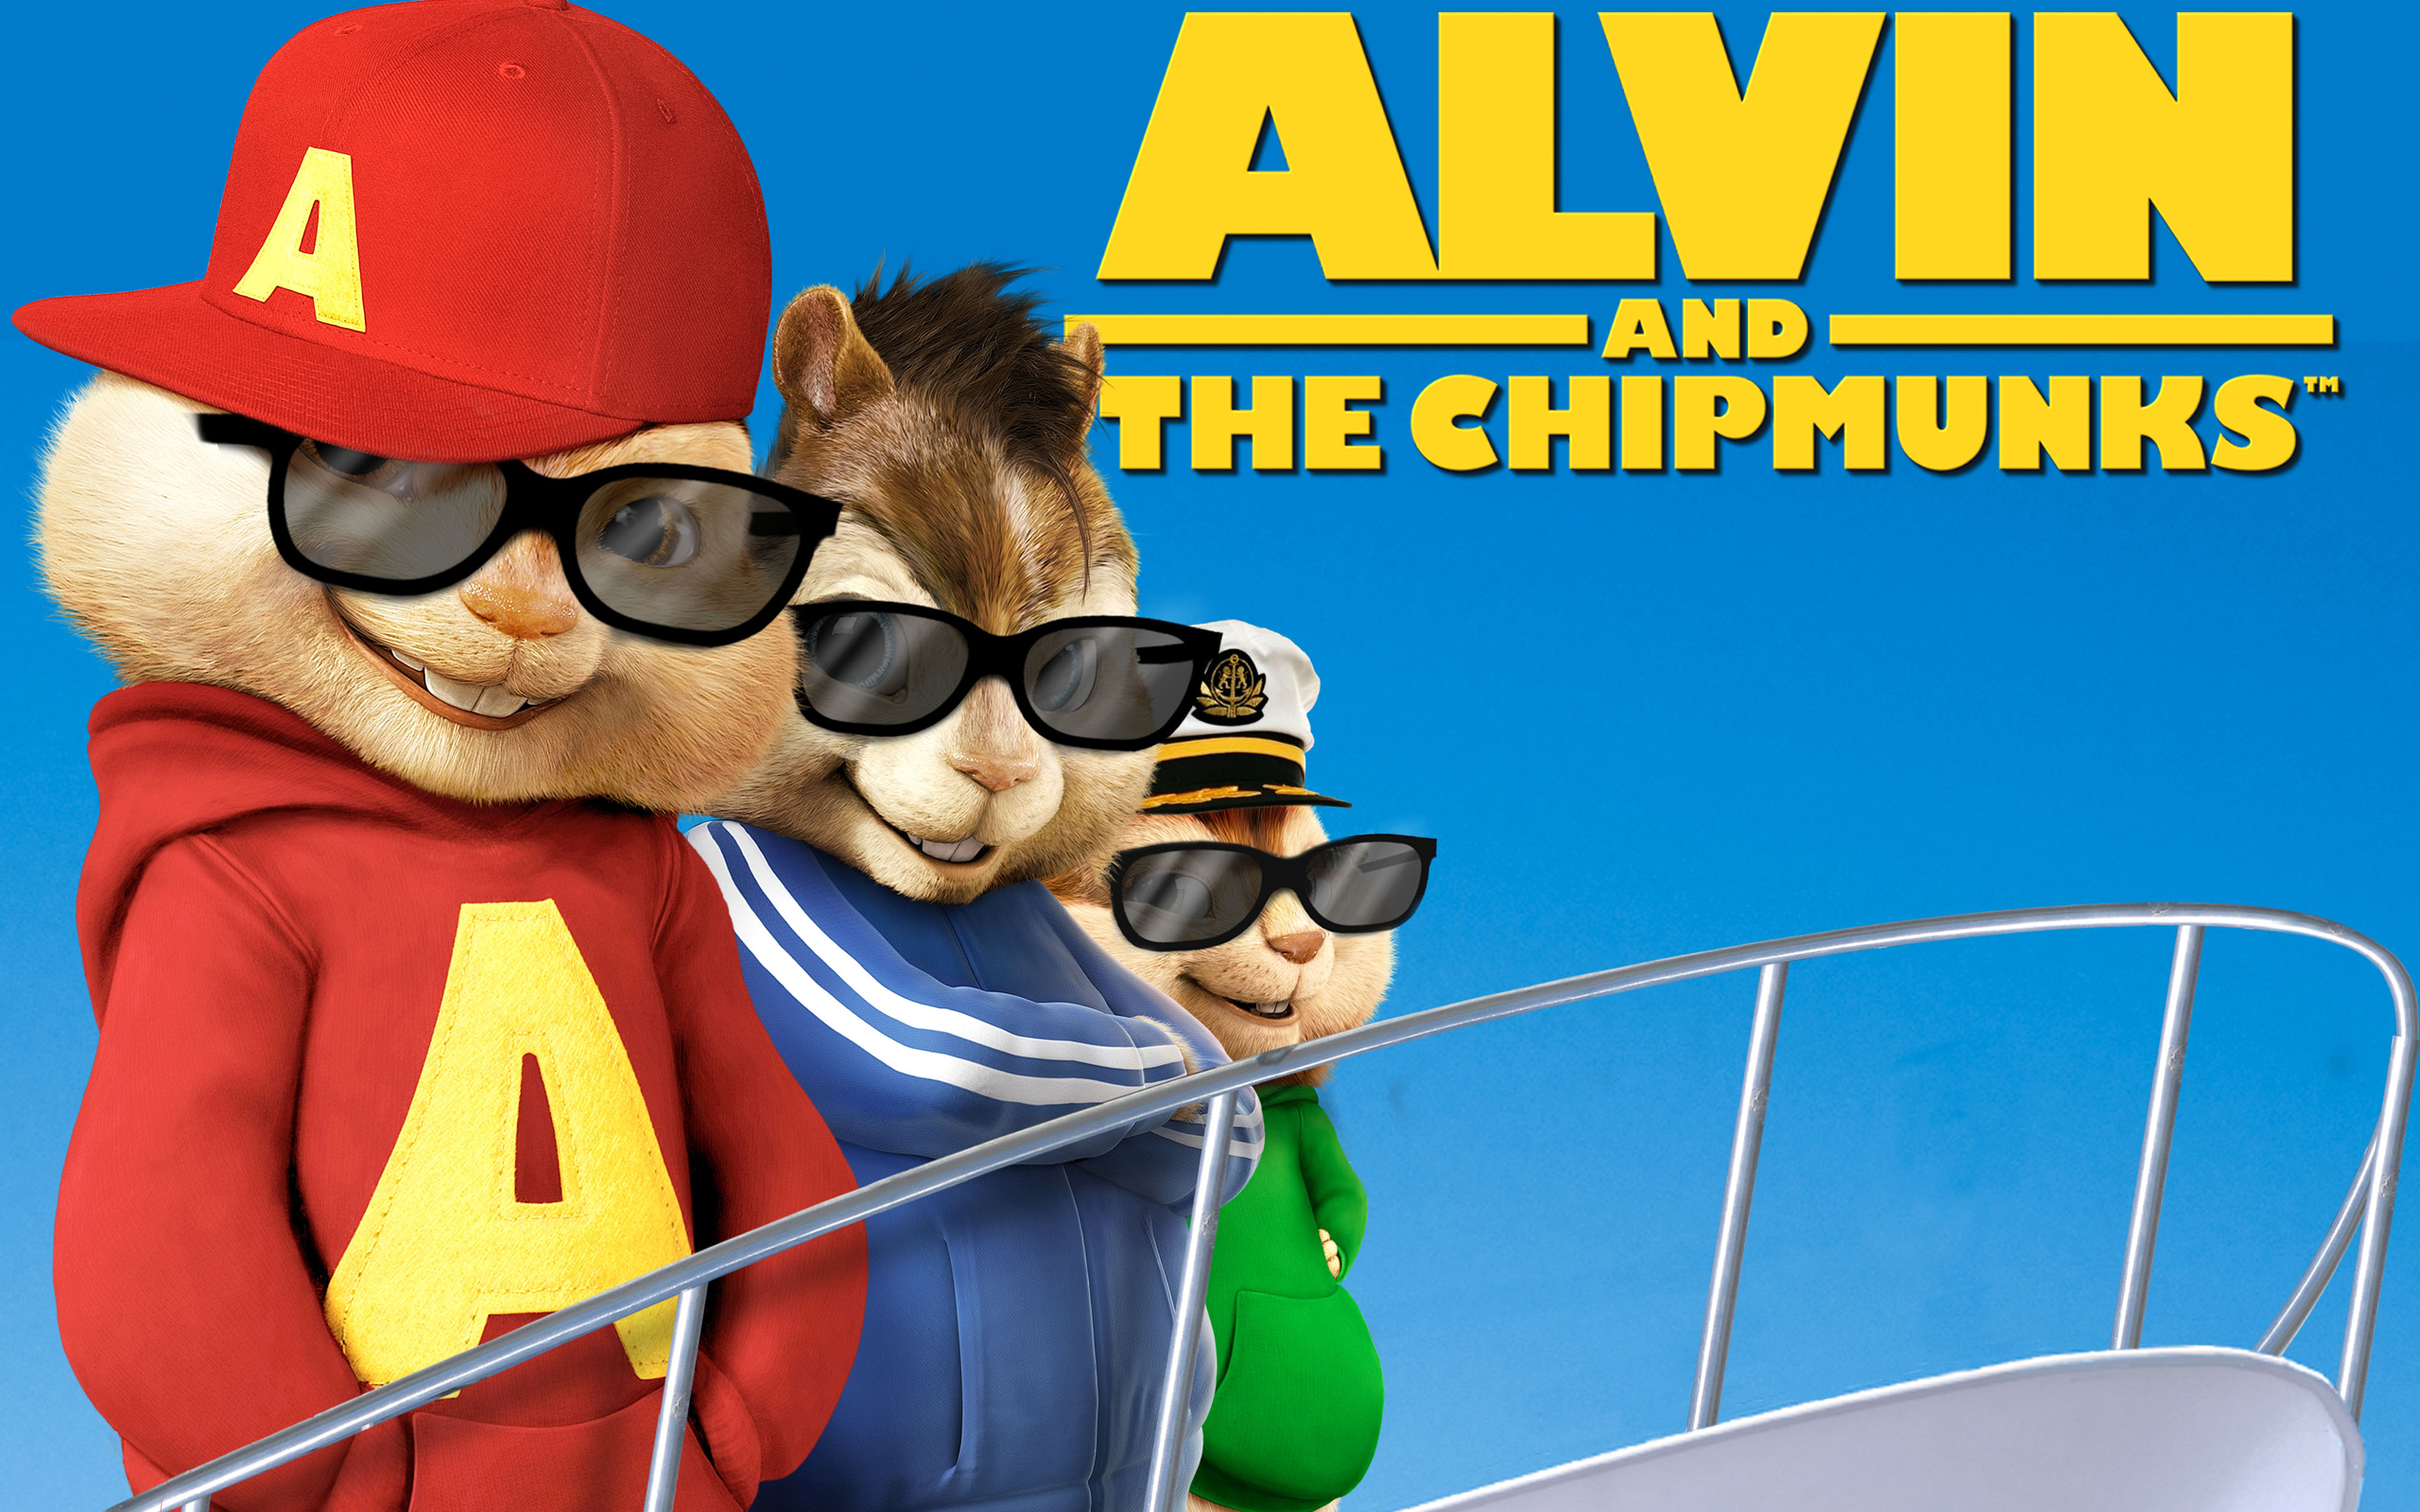 Alvin 4k Wallpapers For Your Desktop Or Mobile Screen Free And